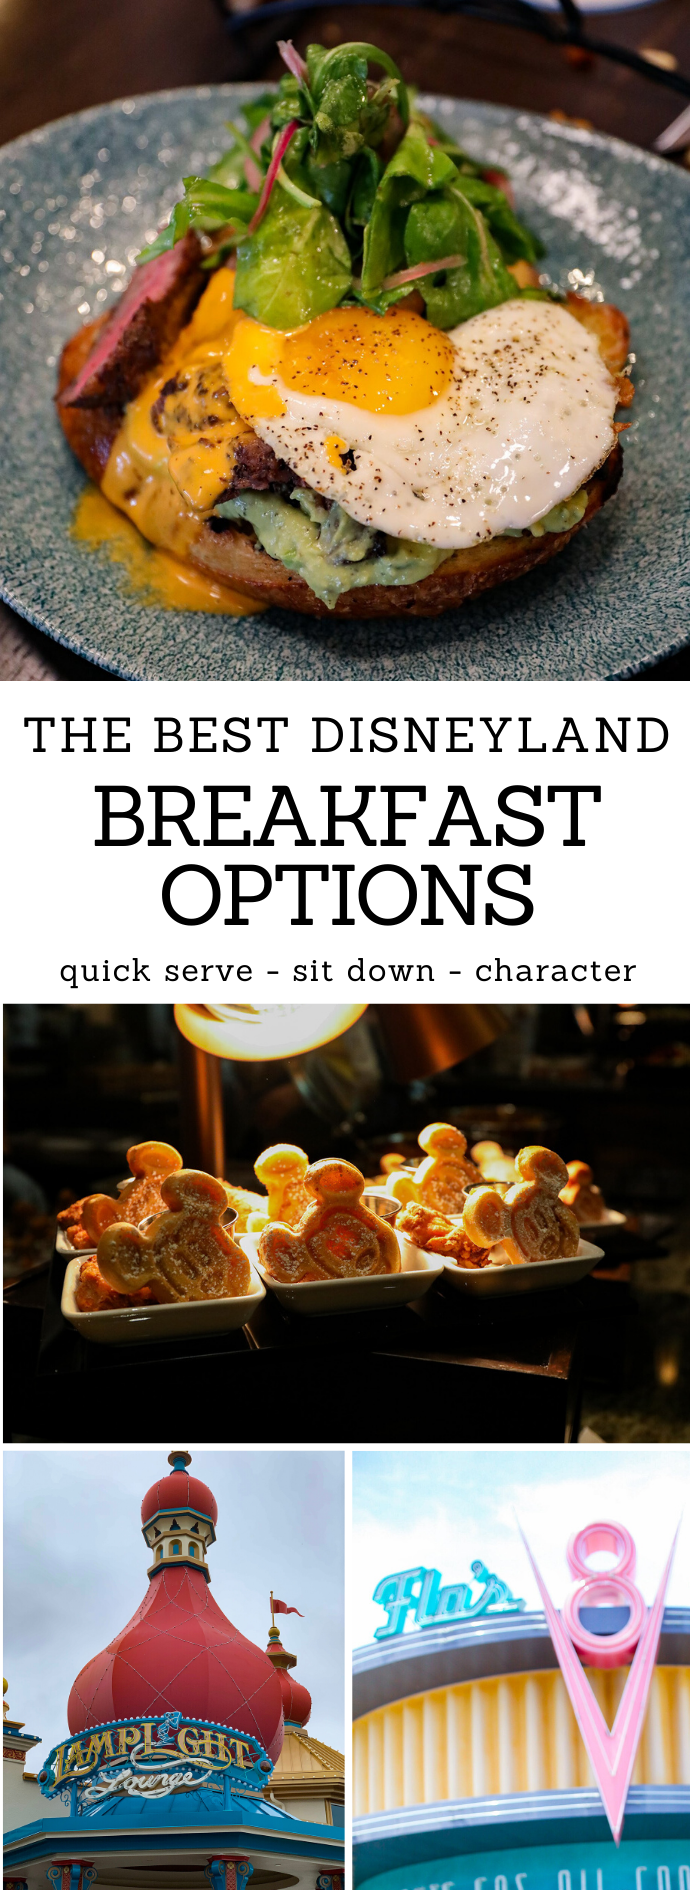 Heading to the Happiest Place on Earth? If you're getting to the park early, then breakfast is going to be first on your agenda.  These are the BEST Disneyland Breakfast Options!